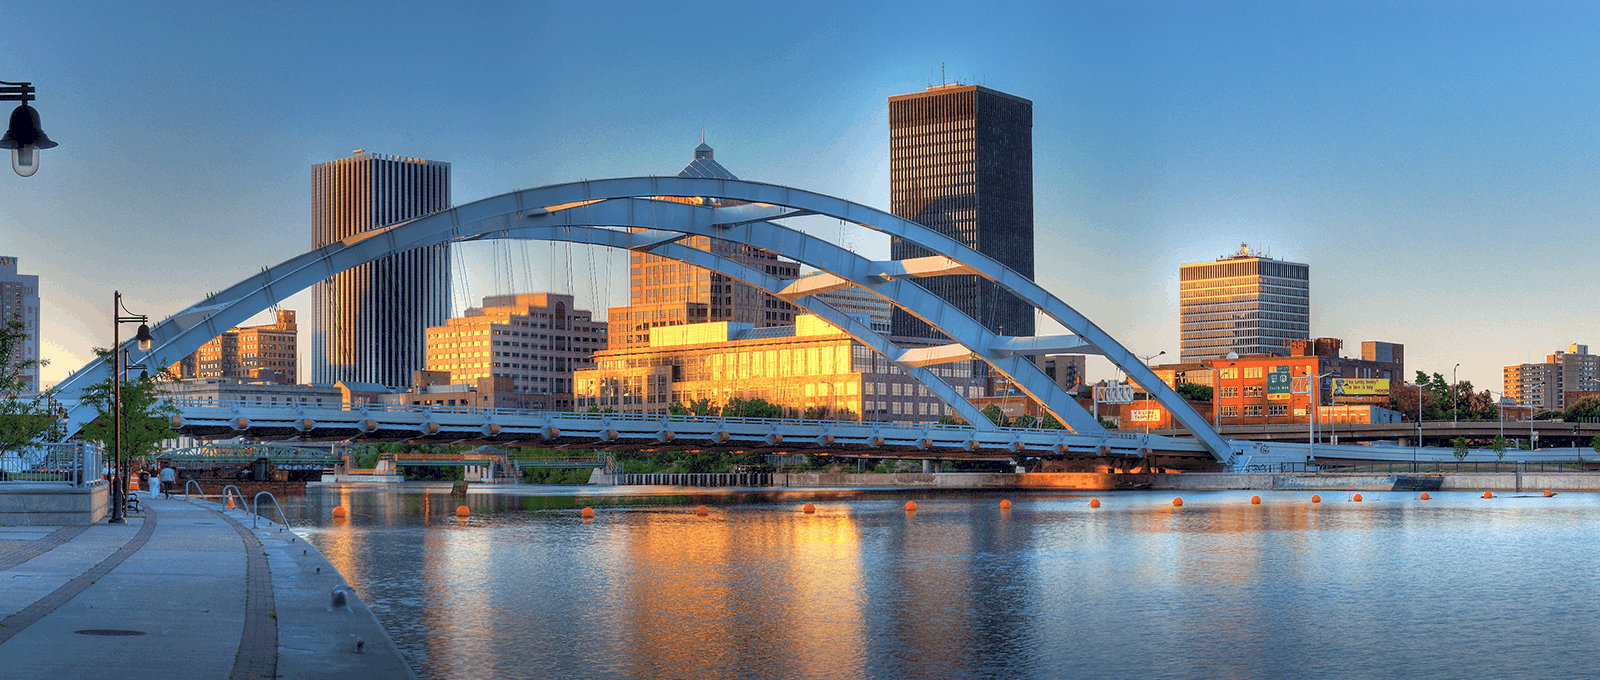 travel getaway guide rochester new york where to stay and dine